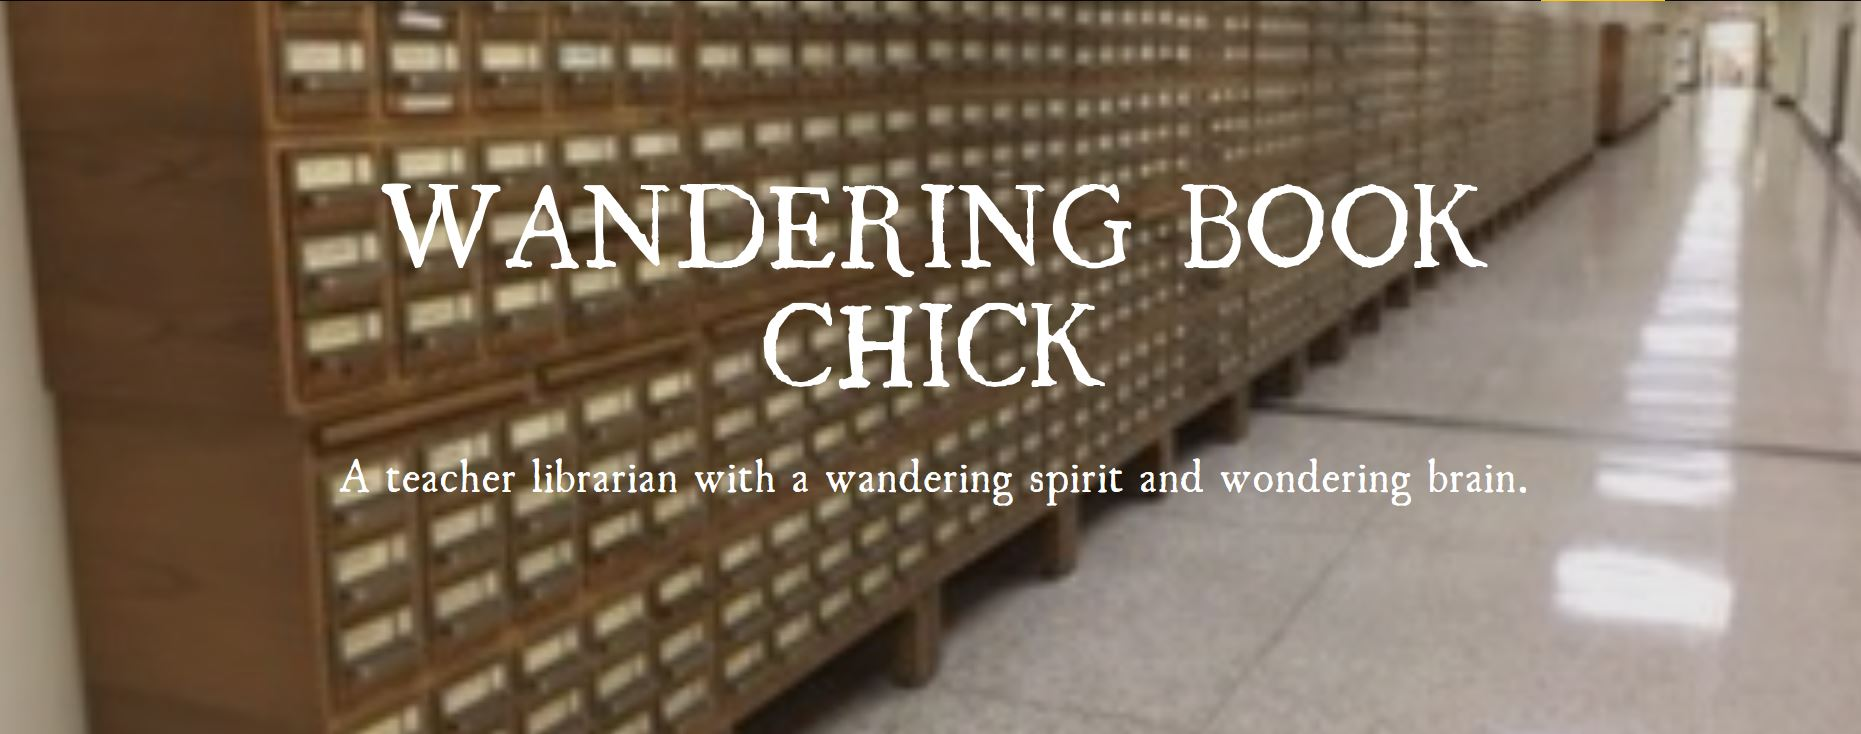 Picture of card catalog at Library of Congress with link to fellowship blog.